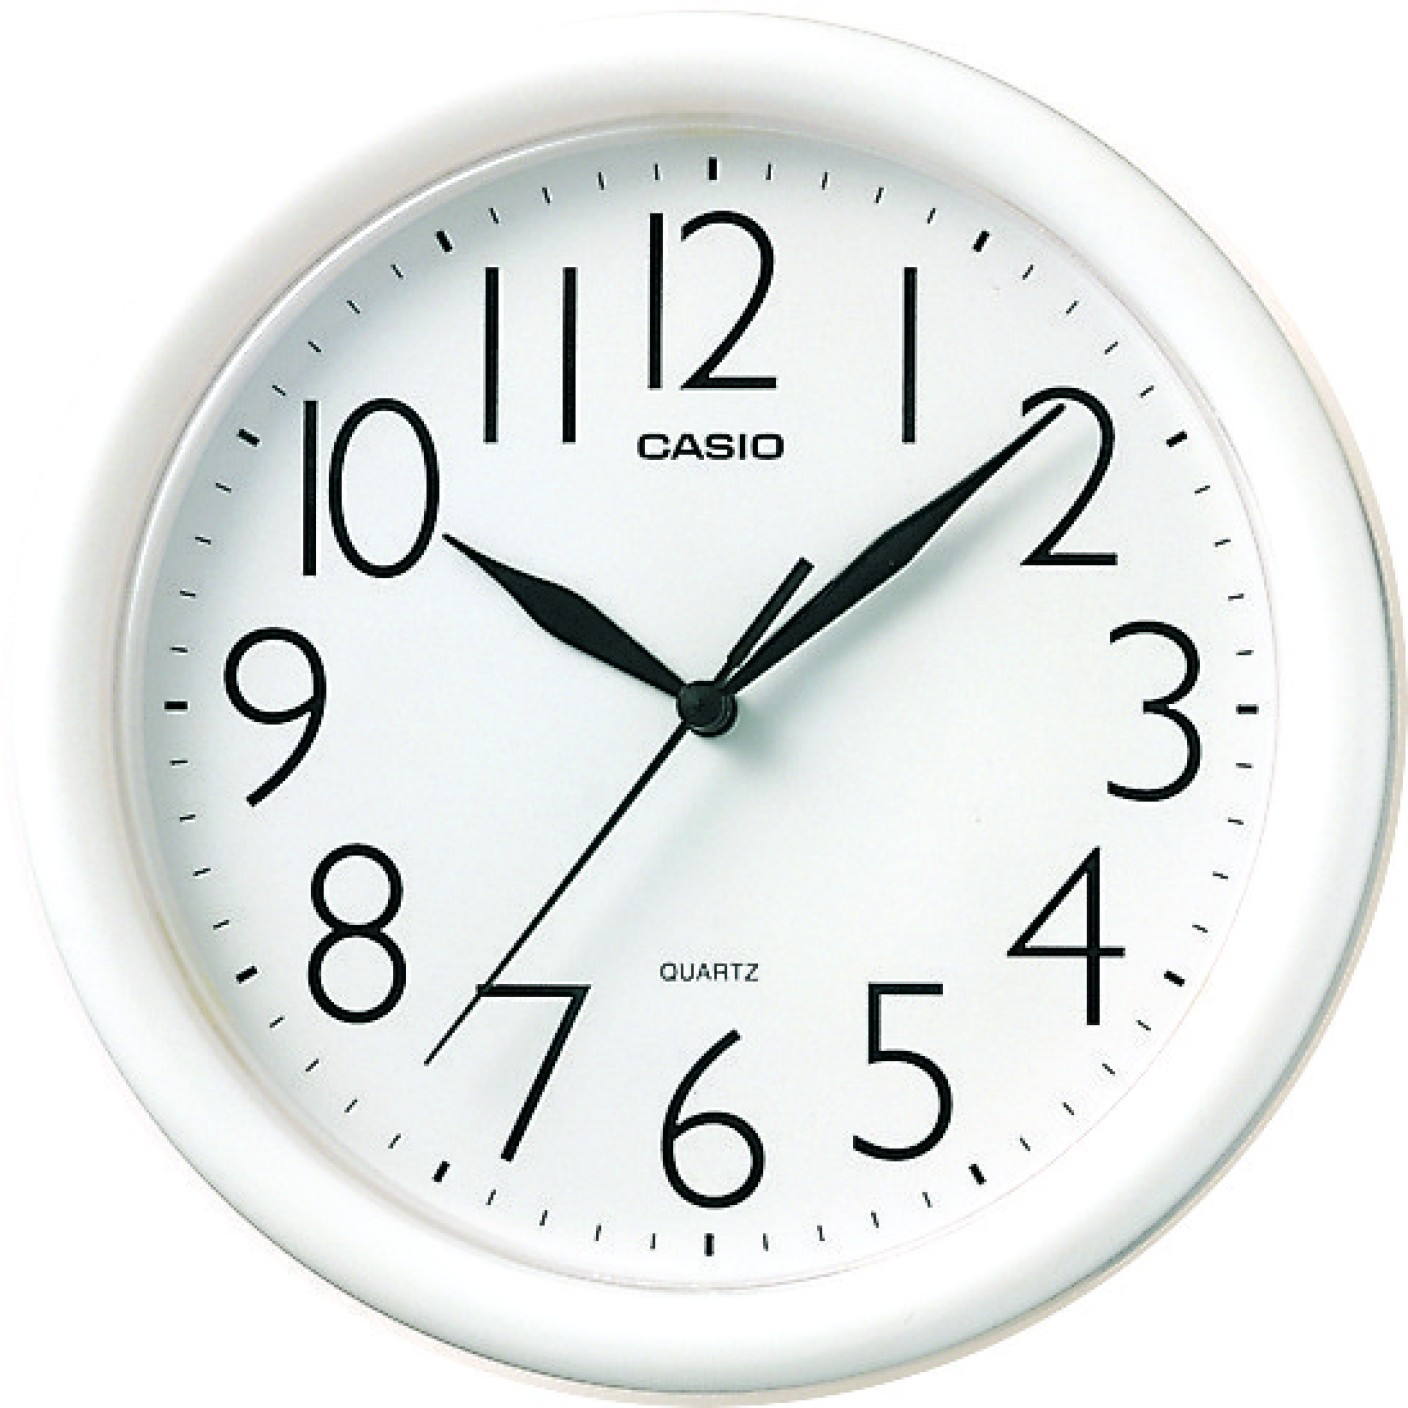 Casio analog 246 cm dia wall clock price in india buy casio casio analog 246 cm dia wall clock share amipublicfo Gallery